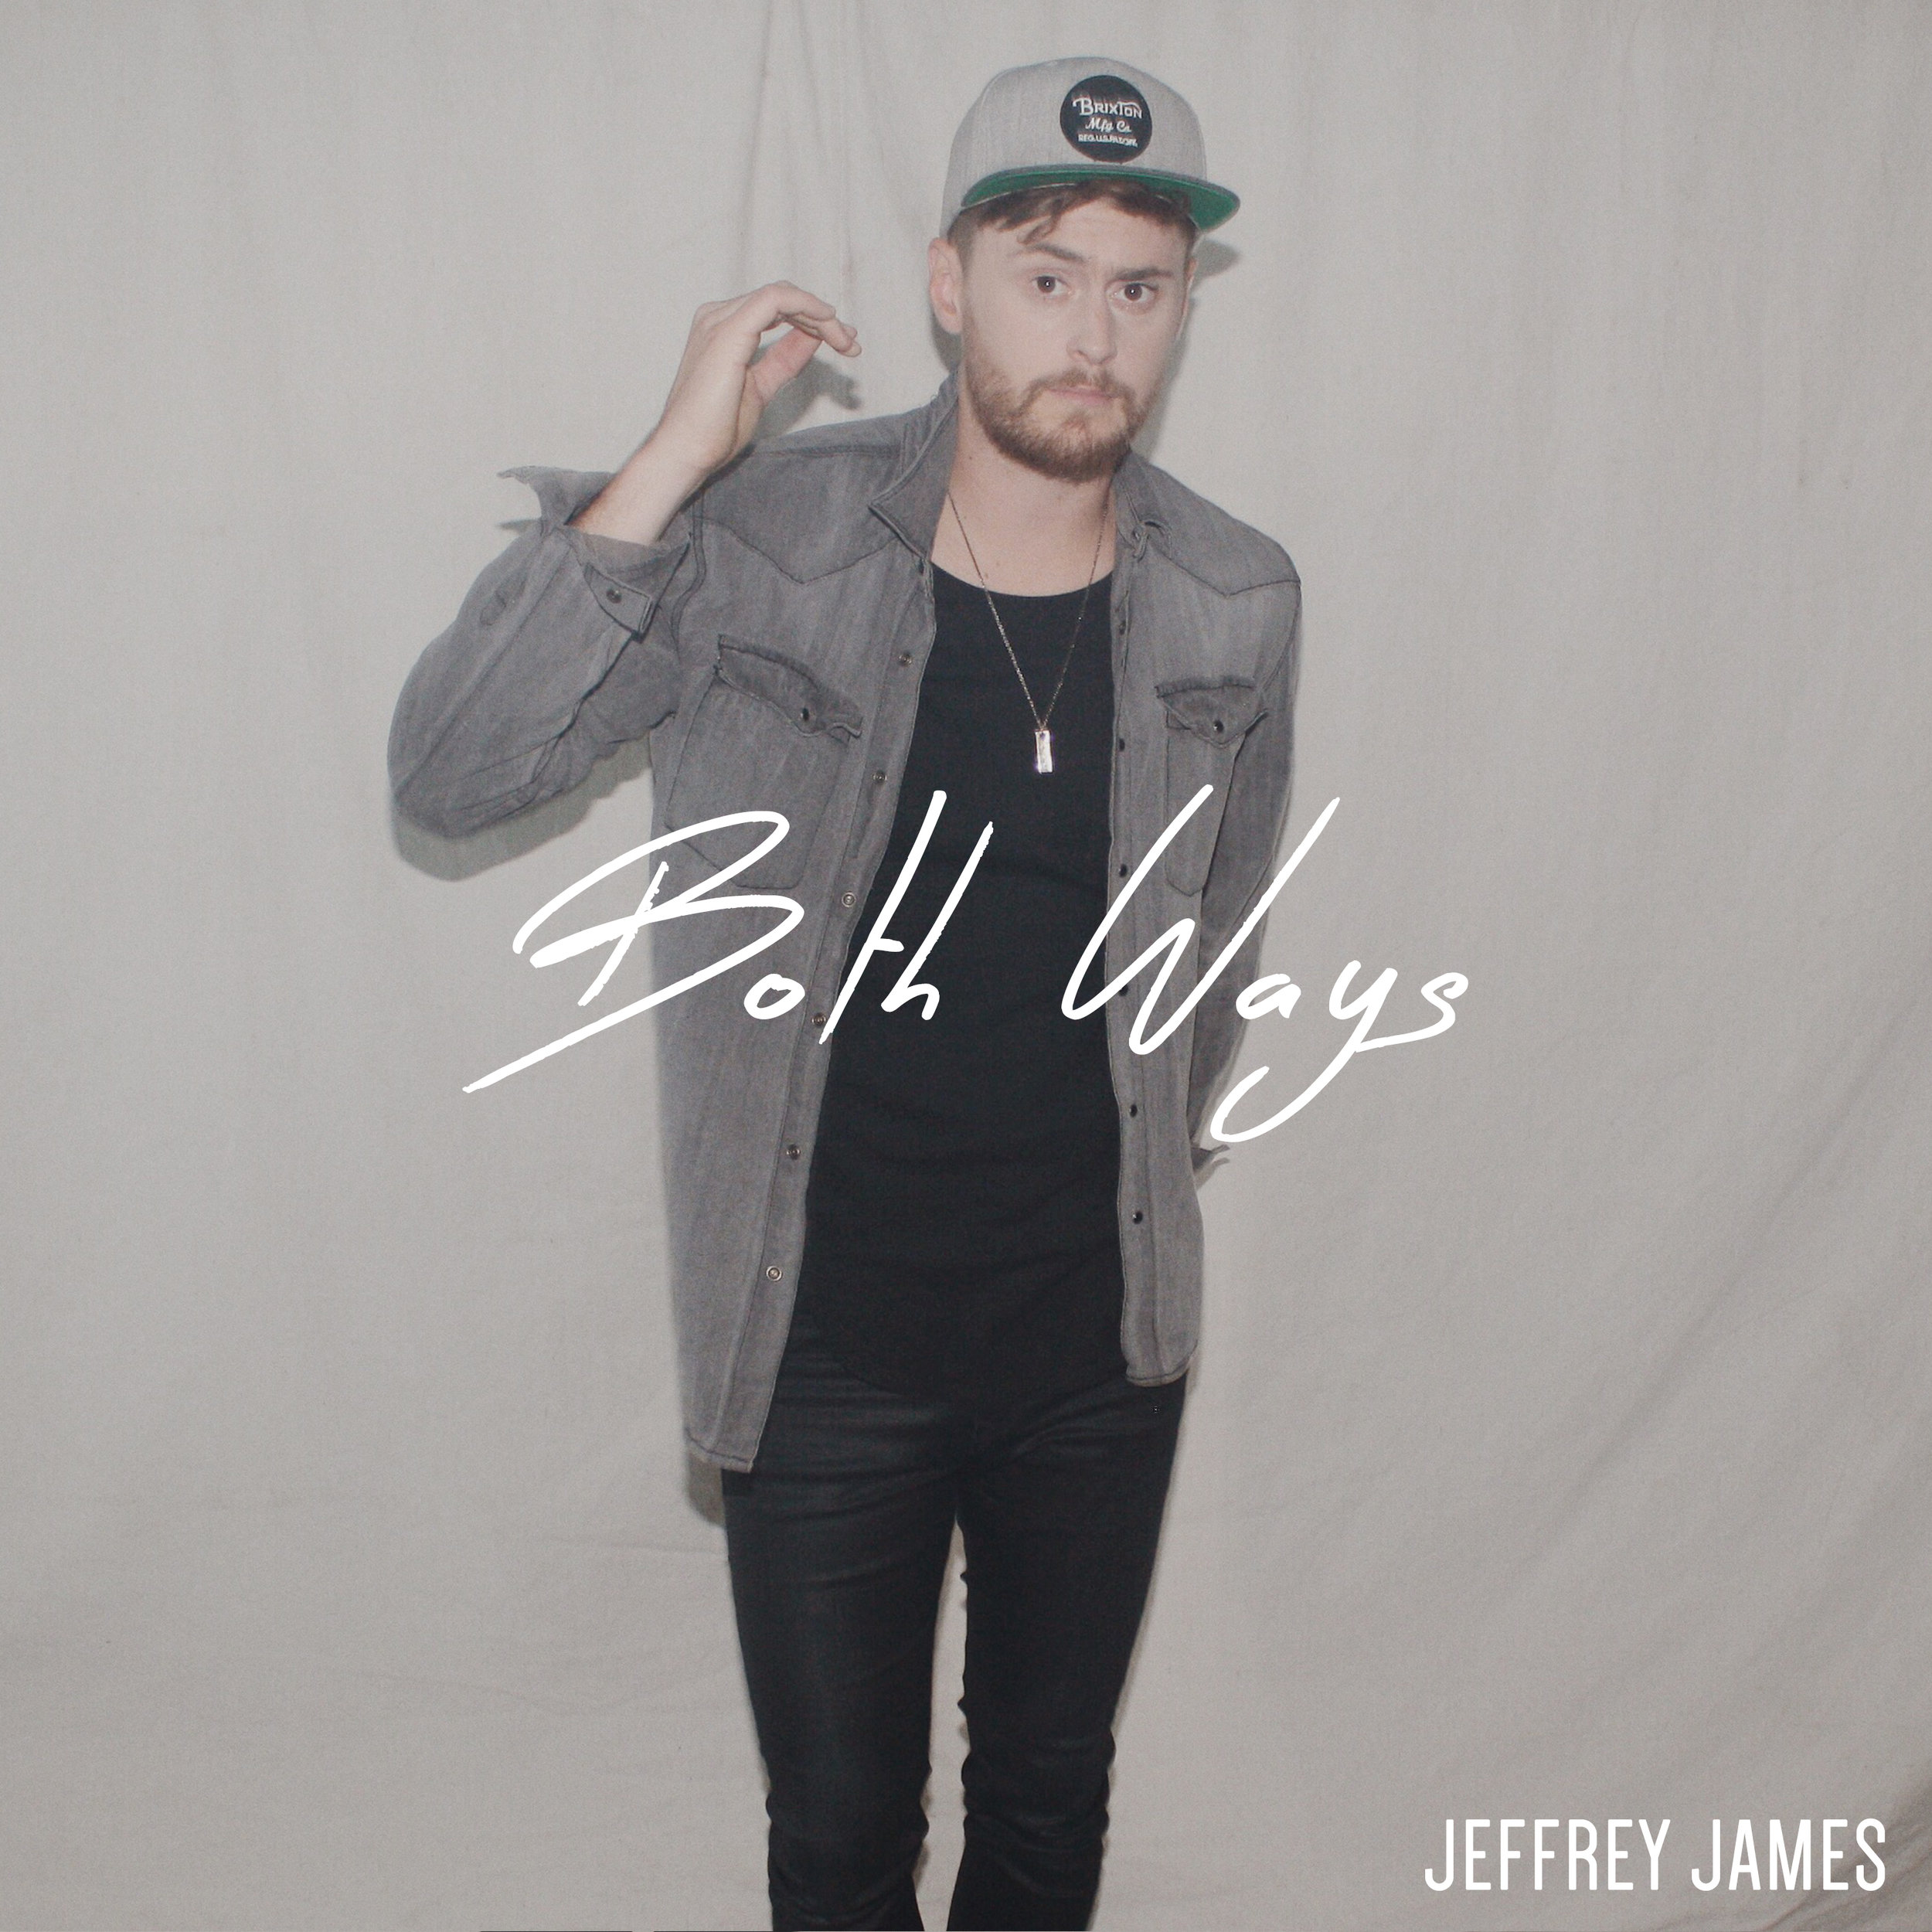 SXS039 Jeffrey James - Both Ways